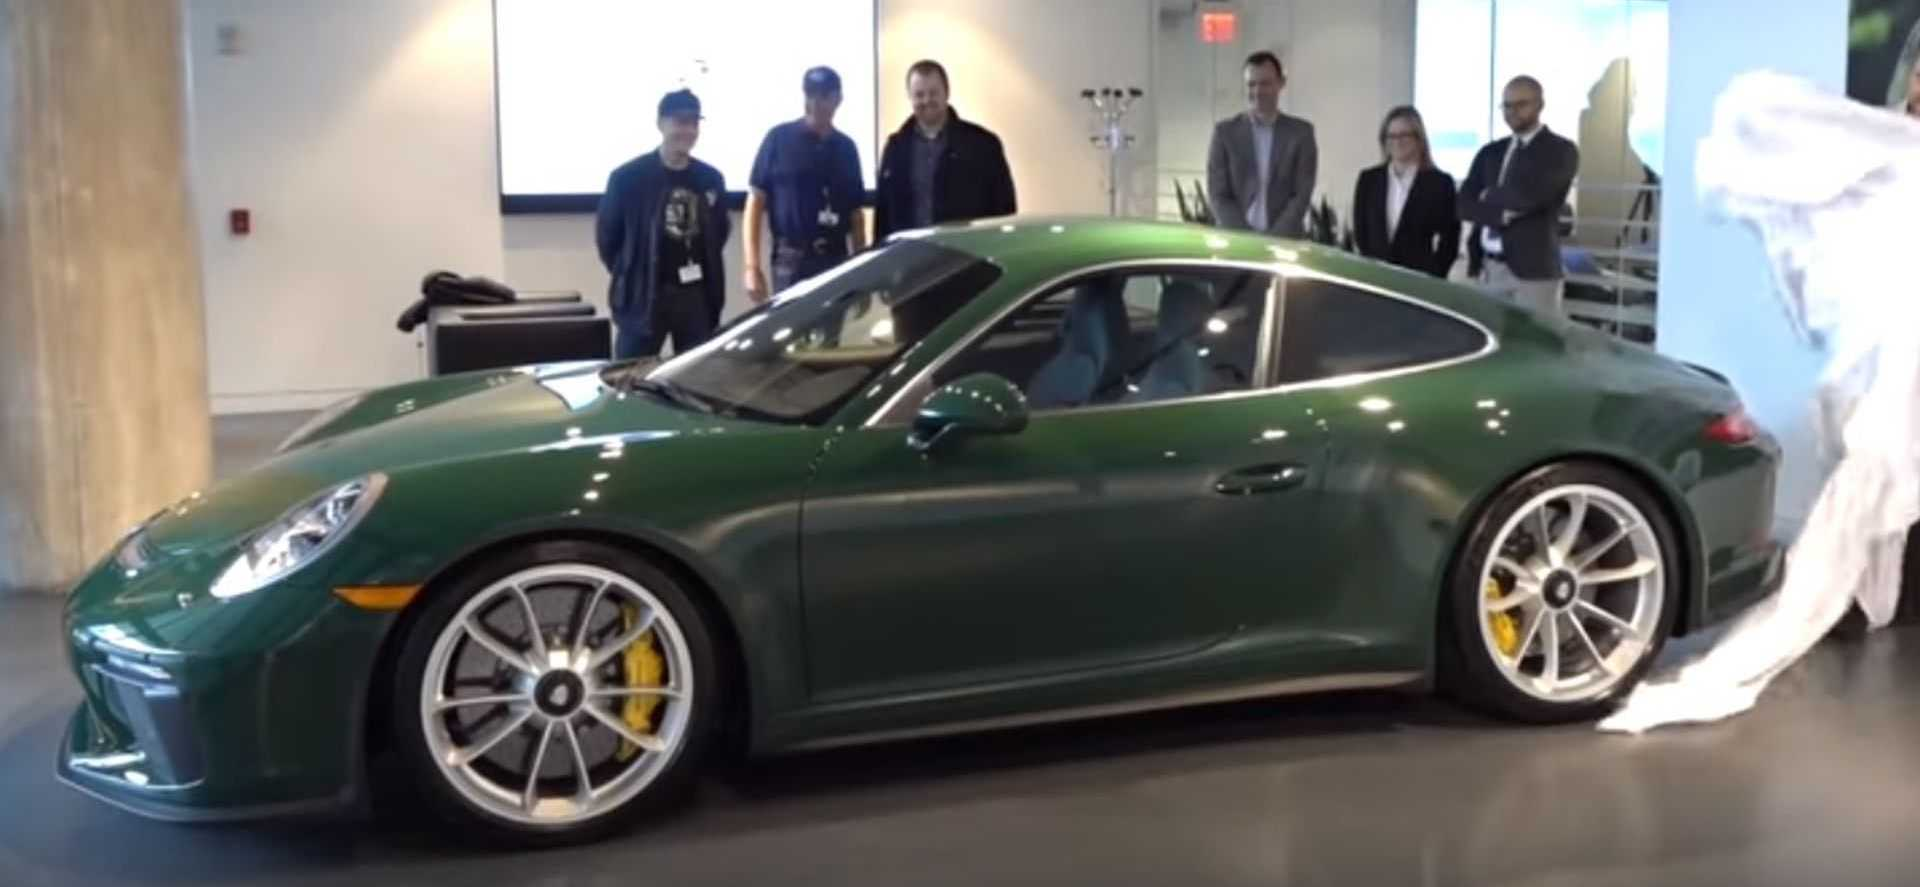 Porsche 911 GT3 Touring In British Racing Green With Wood Trim